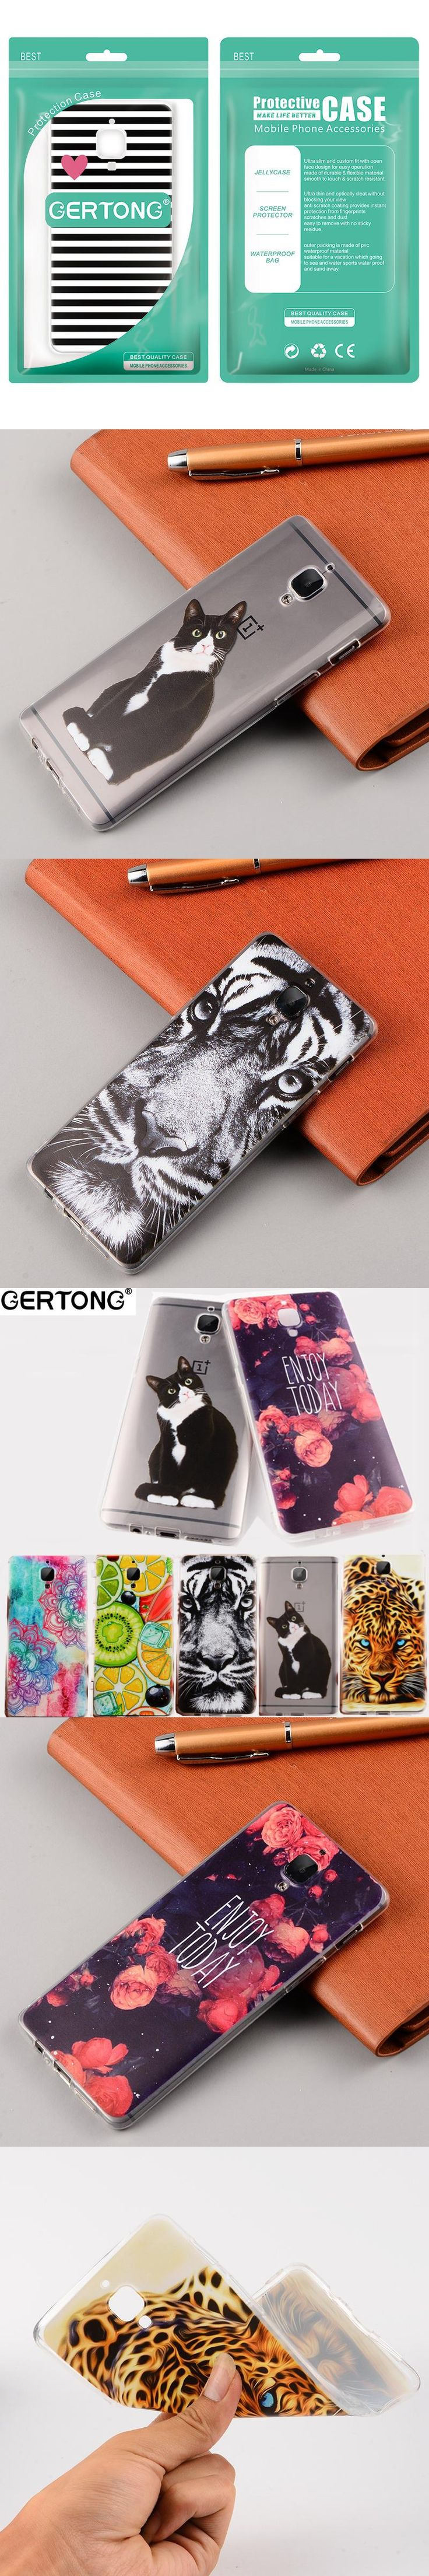 GerTong Cover Case For Oneplus 3T 5 3 X Coque Cases For One Plus + 3T 5 3 T Three Phone Back Pattern Soft TPU Coque Capa Cases